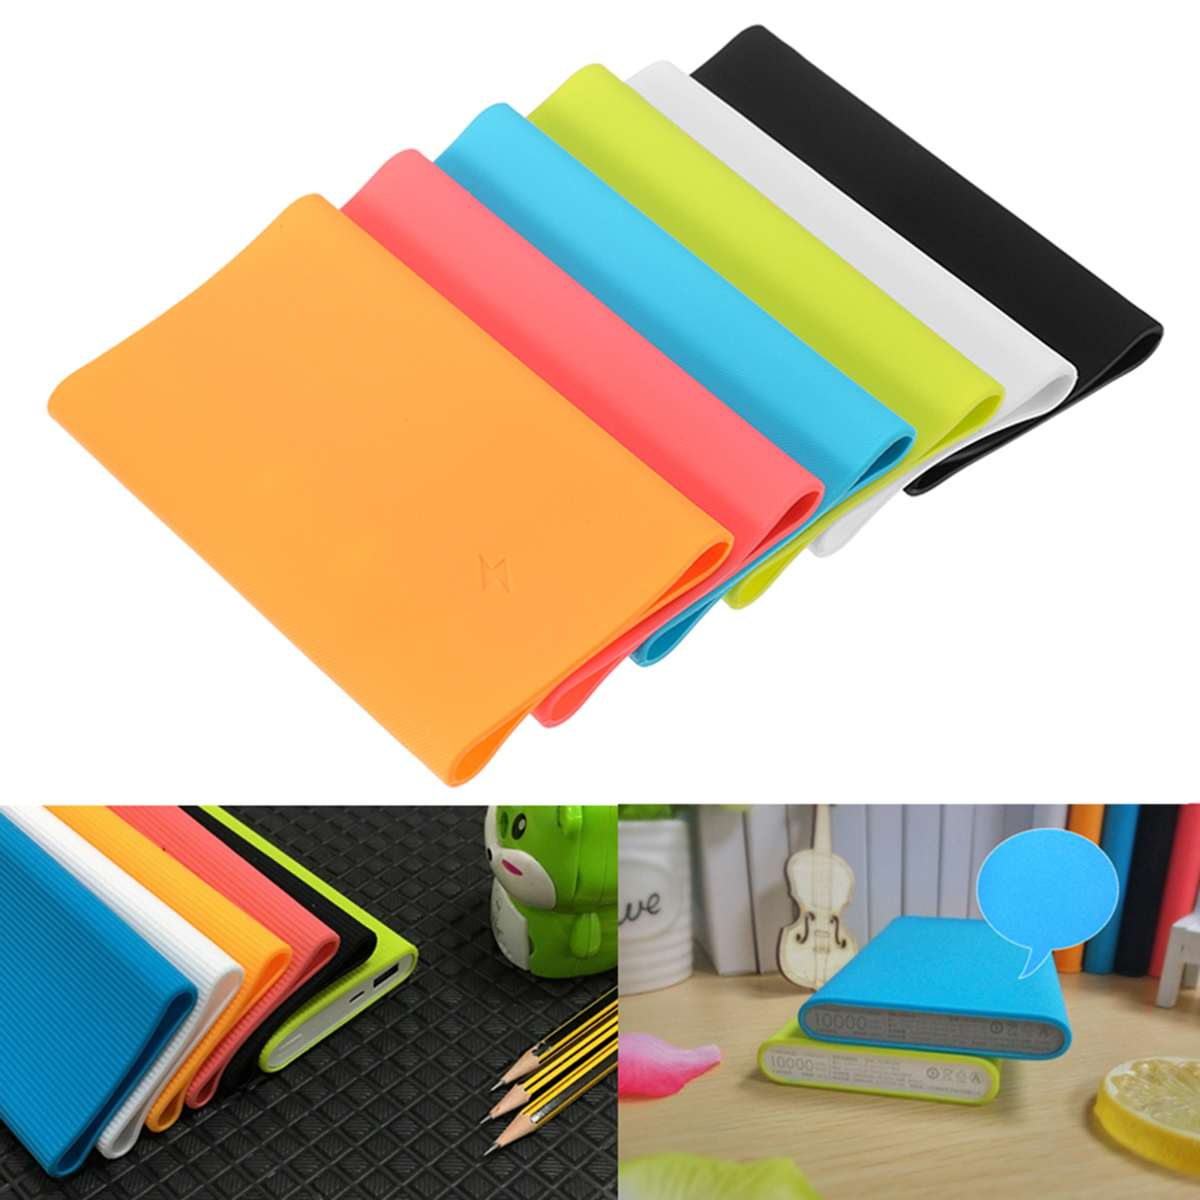 13.5cm Soft Silicone case For Xiaomi Power Bank 2 10000mAh 2016 Protective Anti-slip Case External Battery Cover case Skinfriend